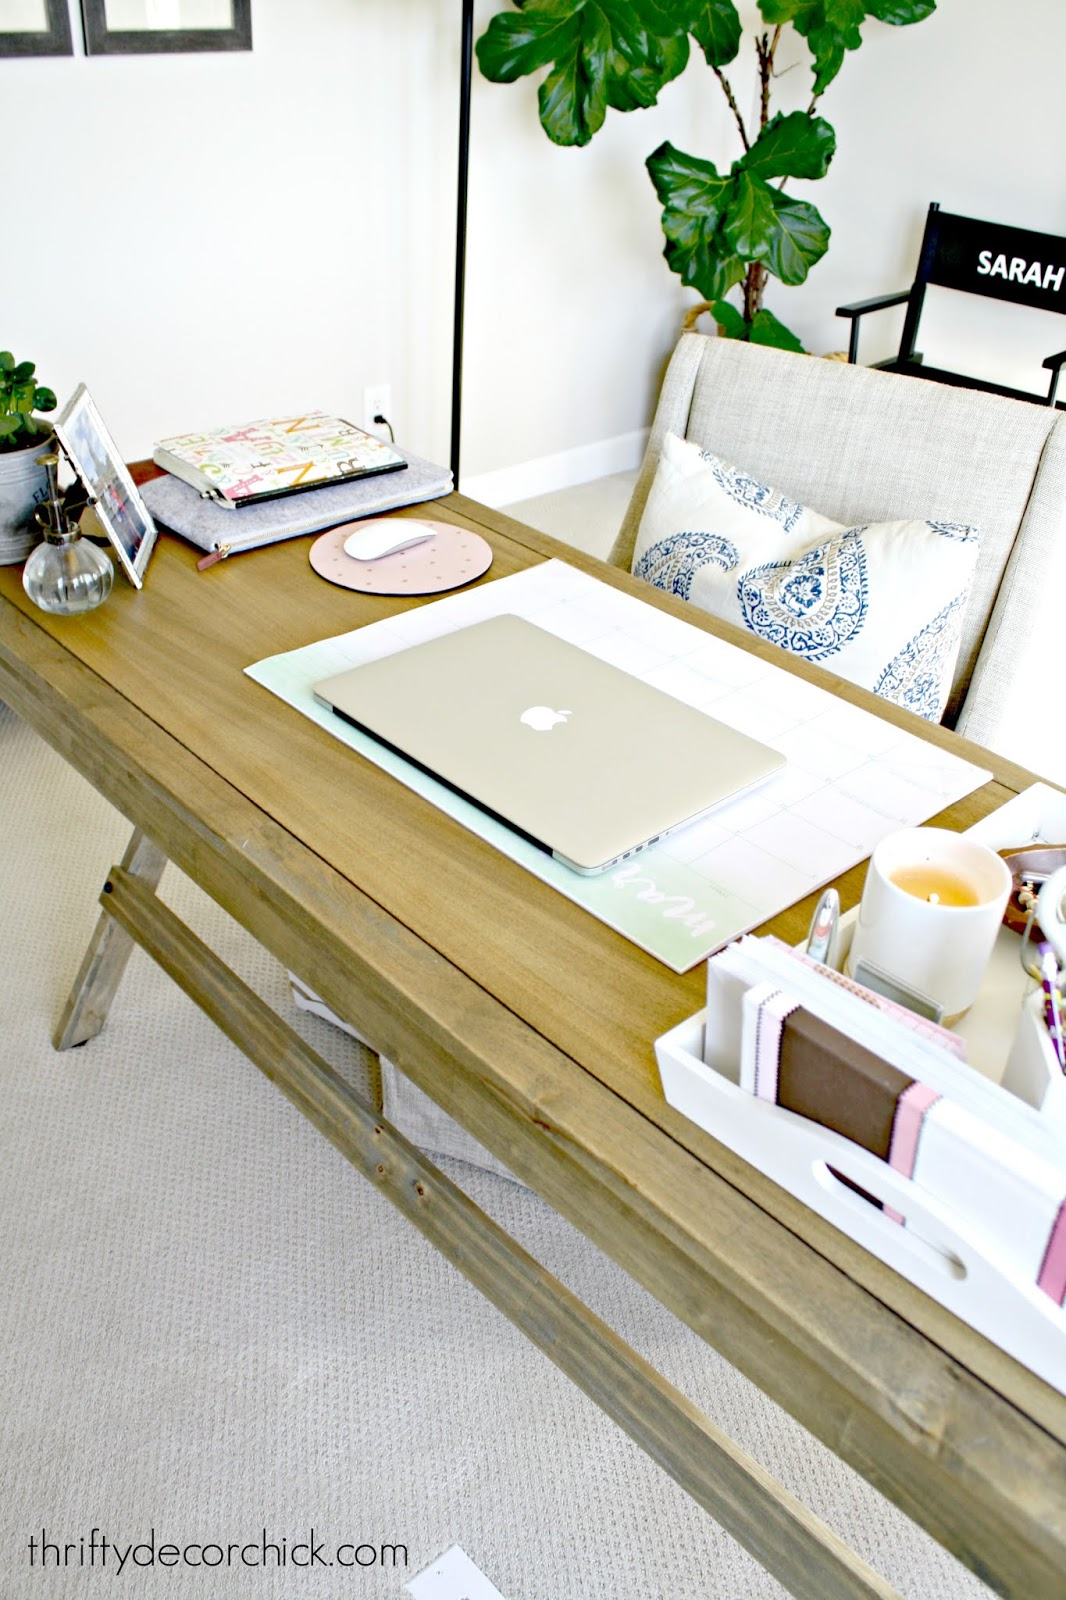 World market wood desk organization